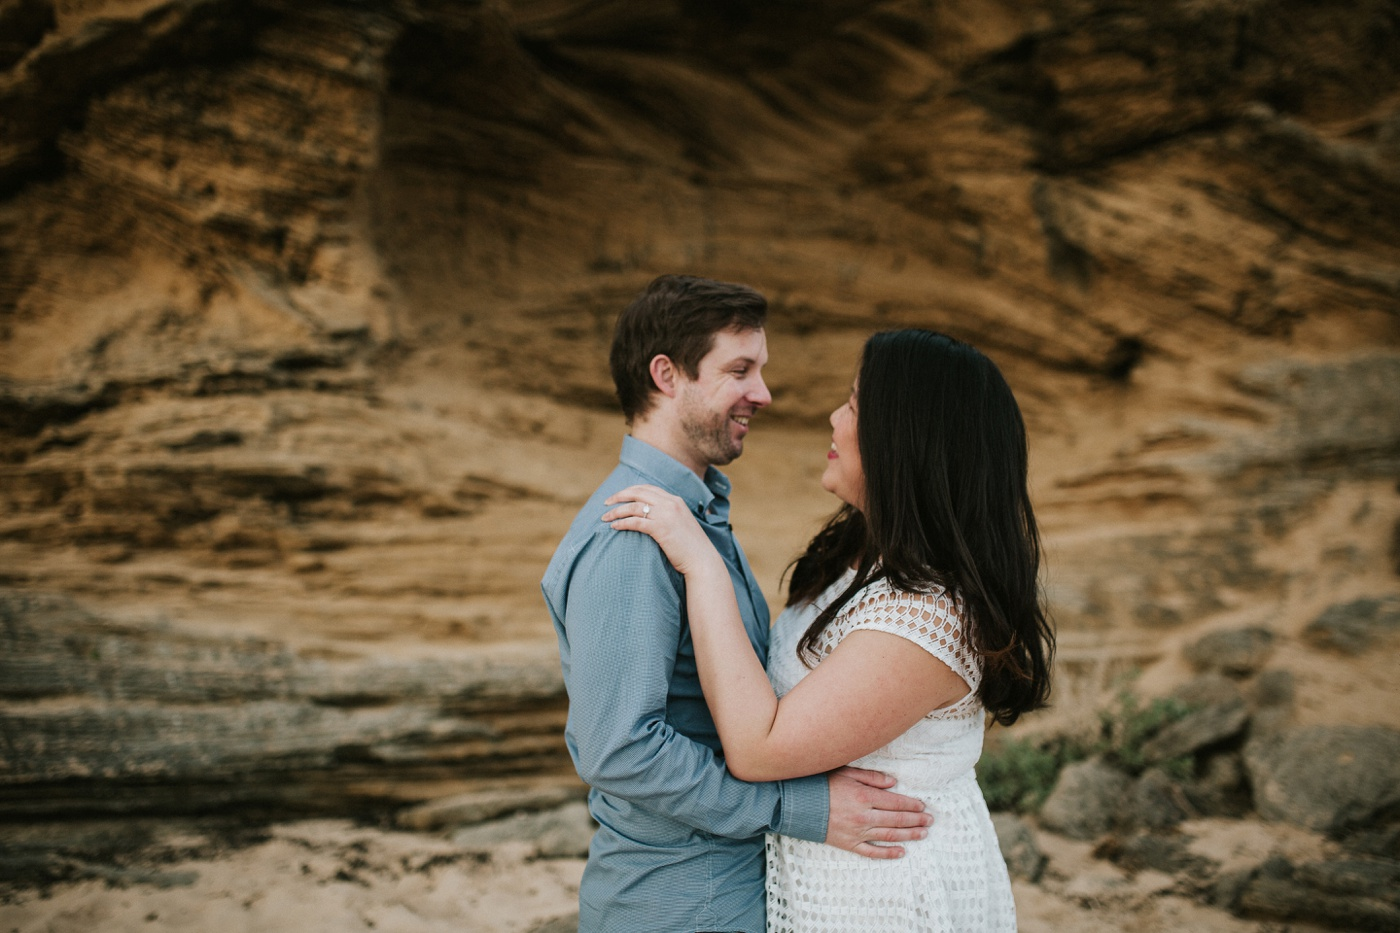 alliedave_mornington-peninsula-back-beach-relaxed-engagement-session_melbourne-candid-wedding-photographer_5